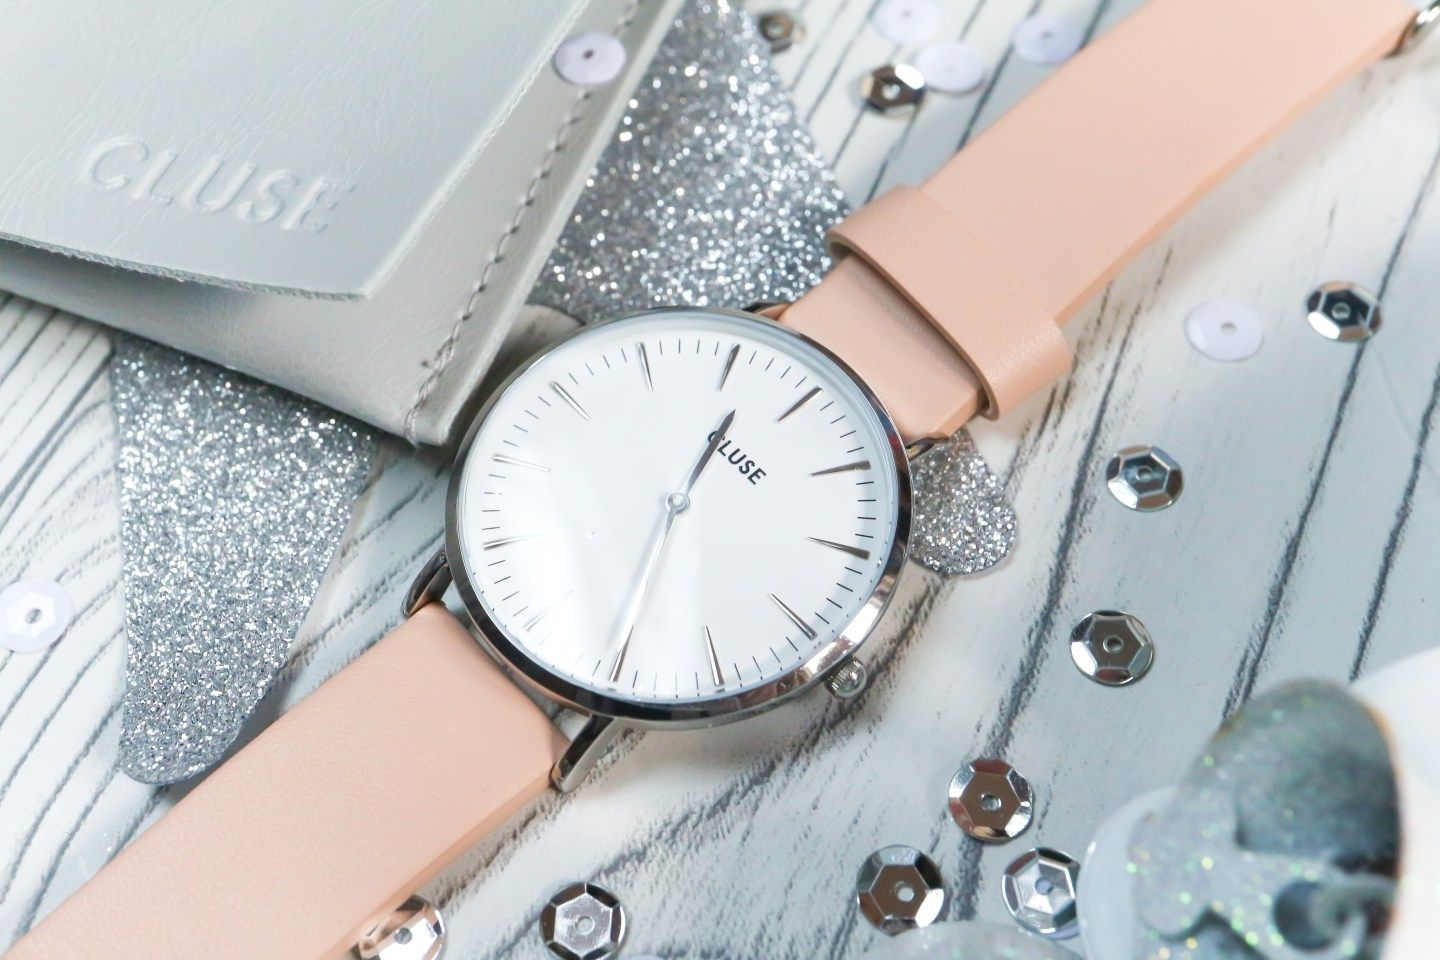 Cluse Watch A Timeless Gift This Christmas Jewels